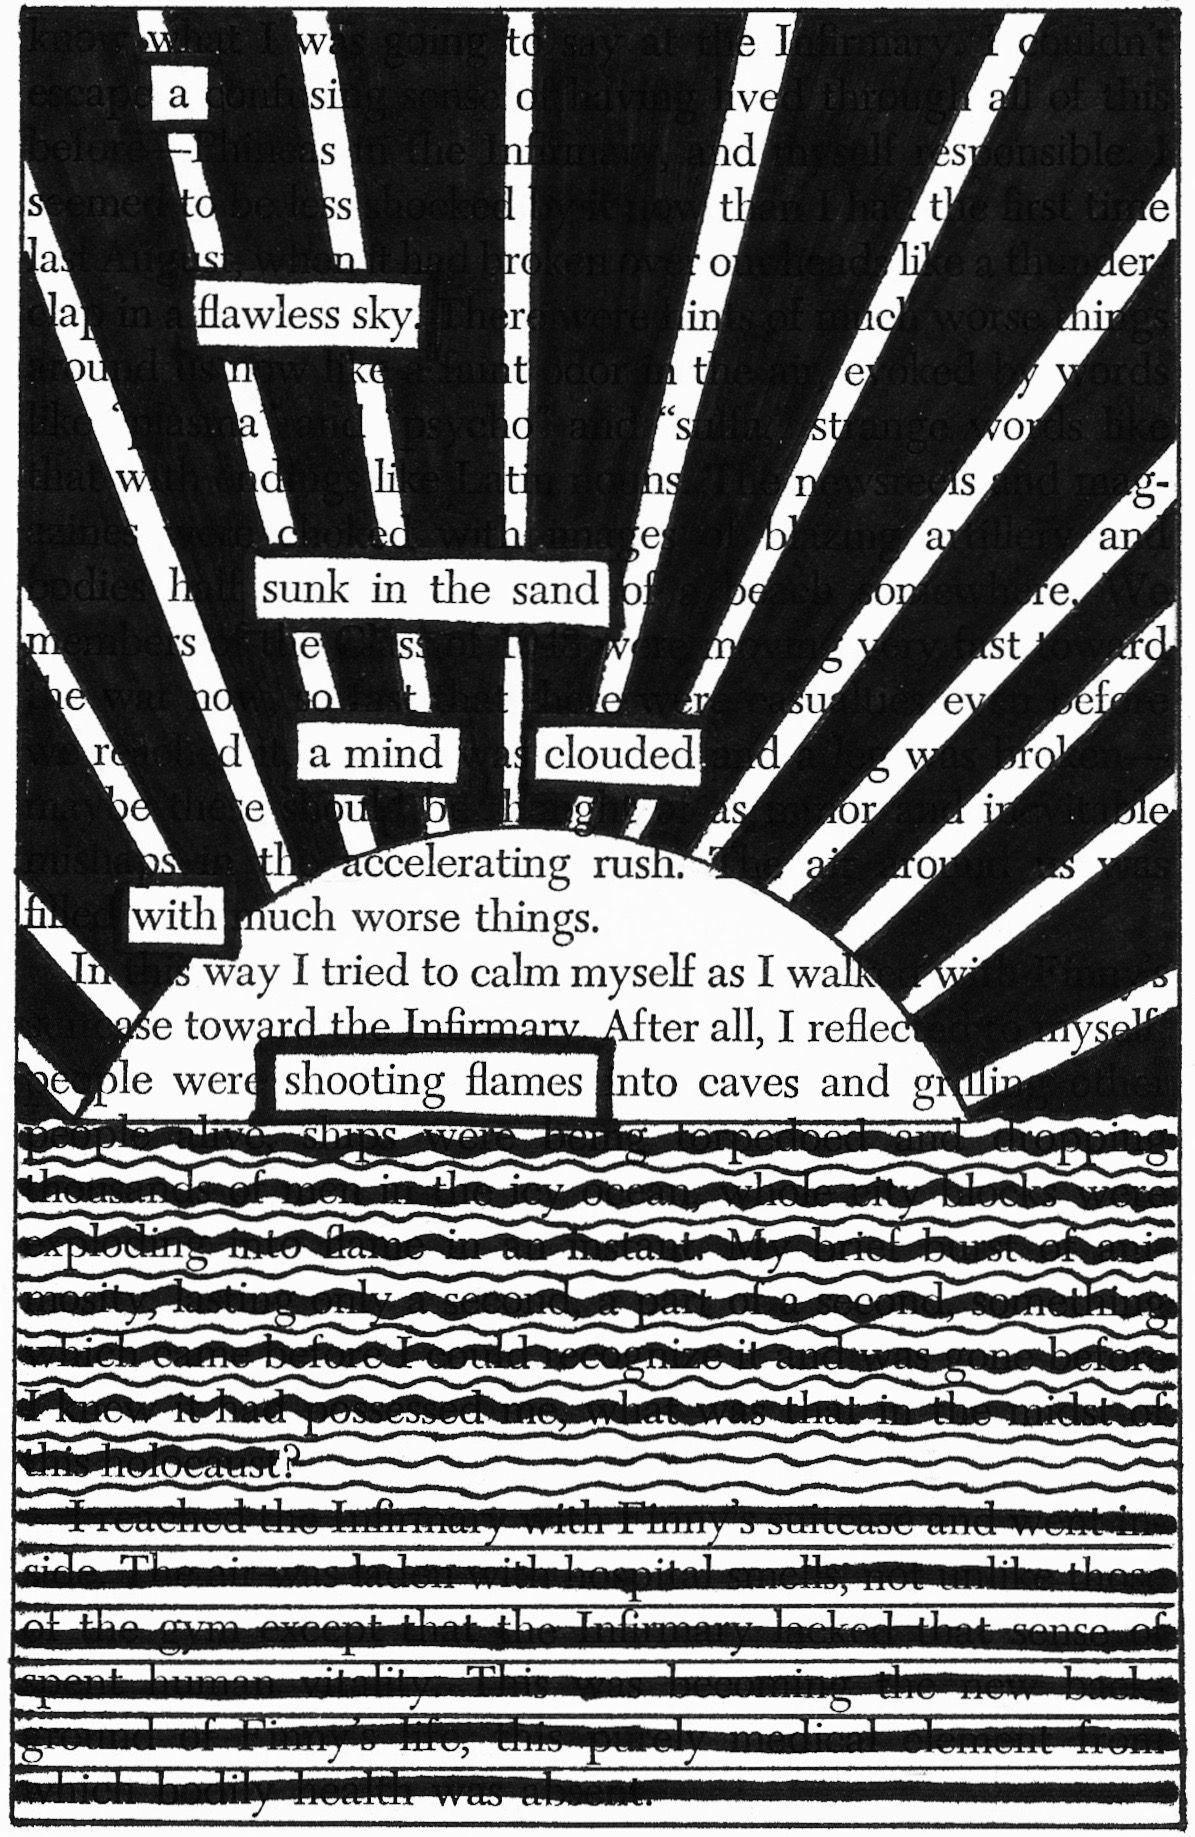 Sinking Sinks Blackout Poetry And Black